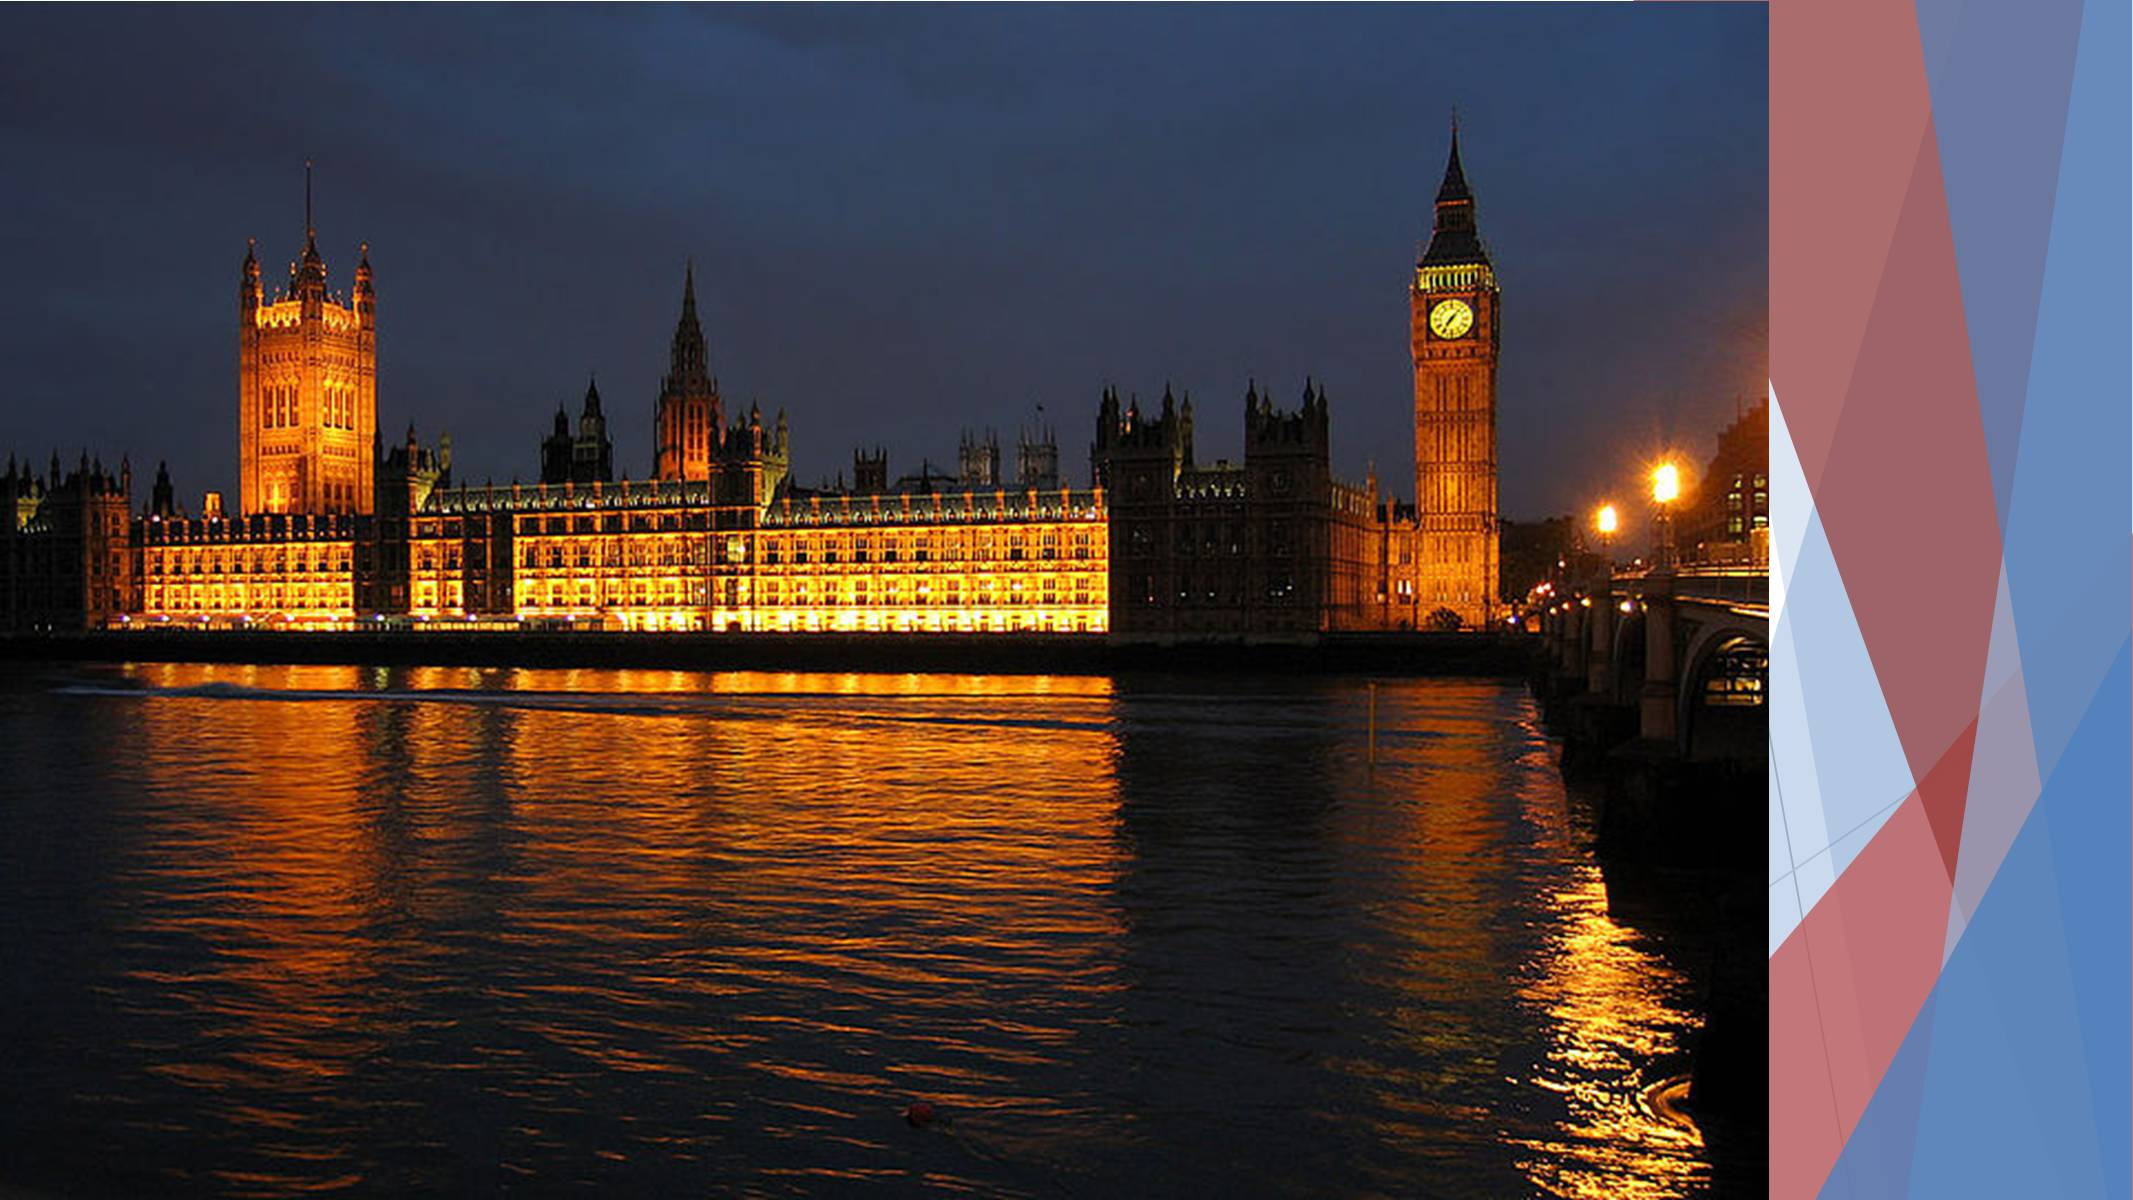 Презентація на тему «Parliament of the United Kingdom of Great Britain and Northern Ireland» - Слайд #6